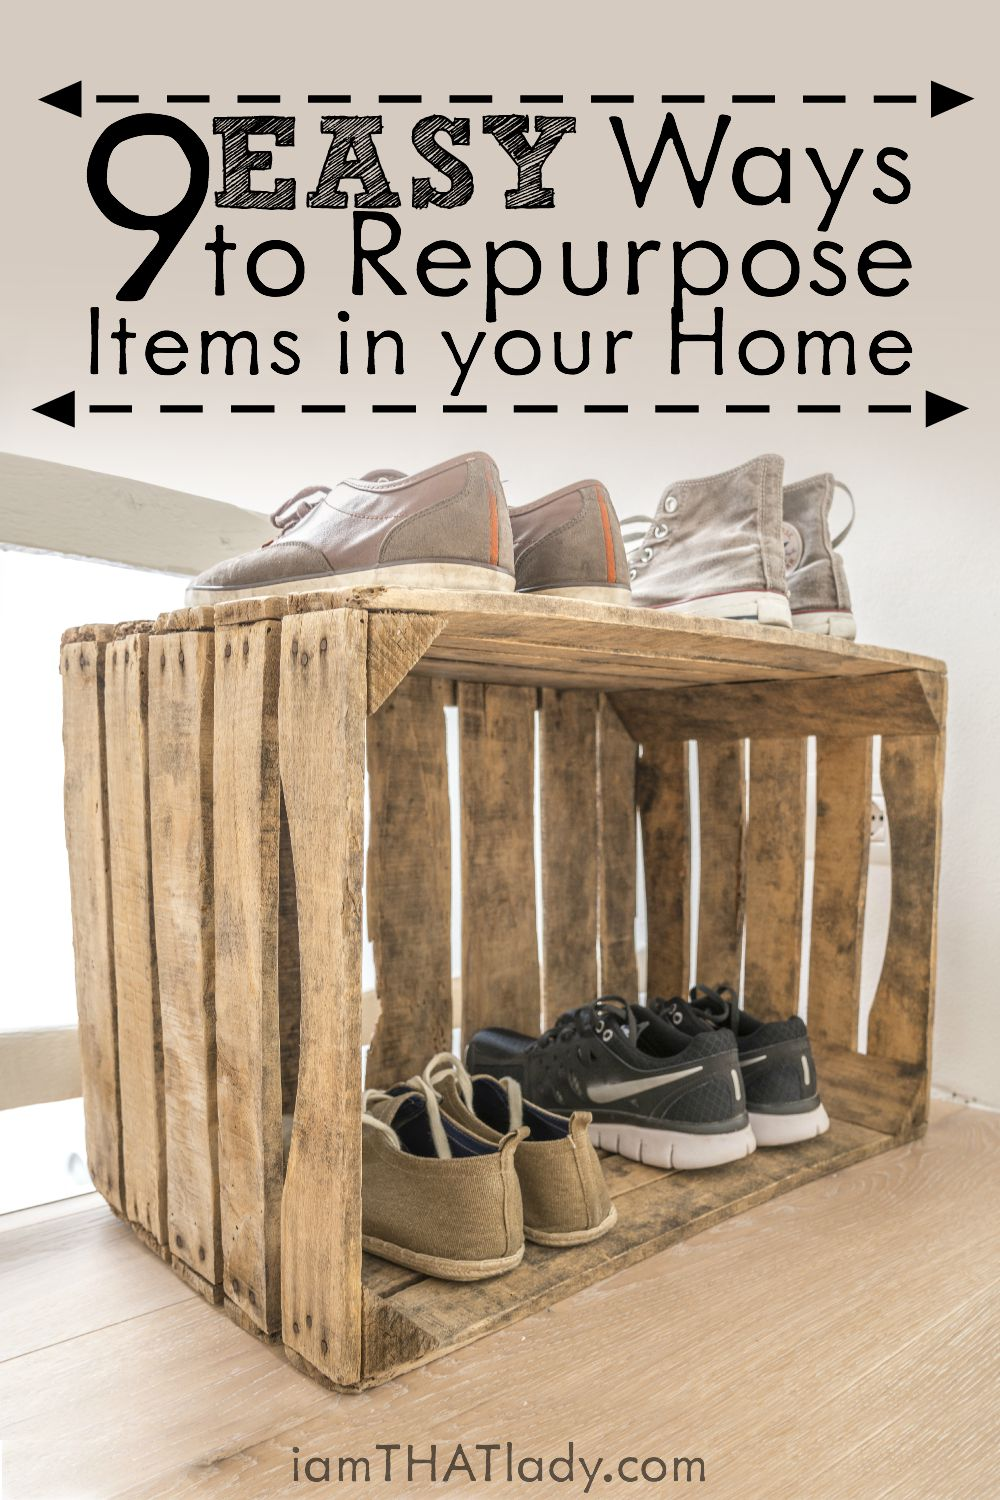 9 easy ways to repurpose items in your home lauren greutman for Fastest way to save for a house